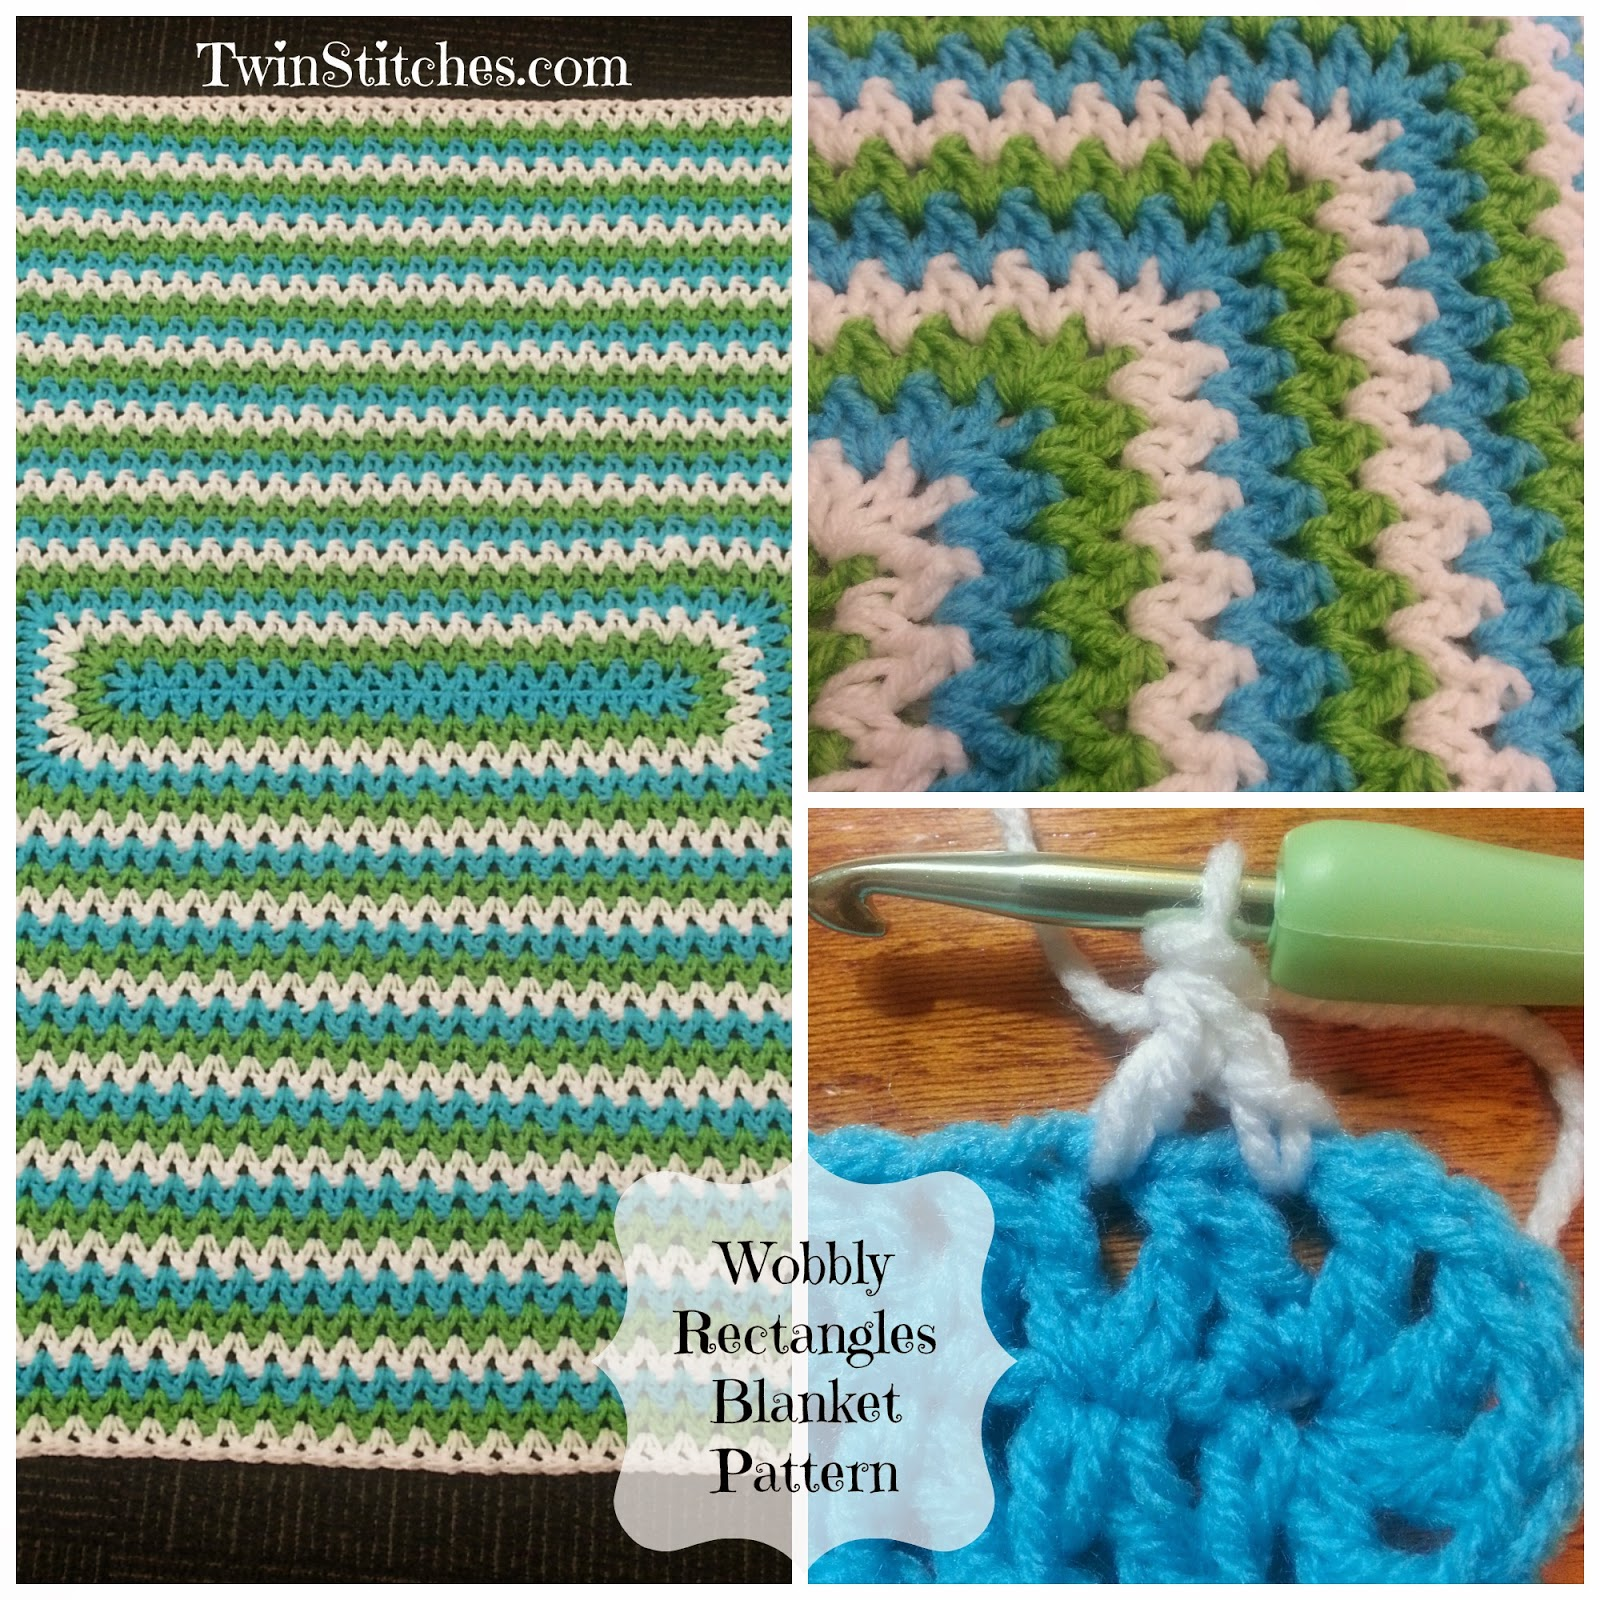 Rectangle crochet afghan free diagram pattern all kind of wiring tw in stitches wobbly rectangles blanket free pattern tw in rh twinstitches com crochet peacock afghan pattern rectangular crochet afghan printable pattern ccuart Choice Image